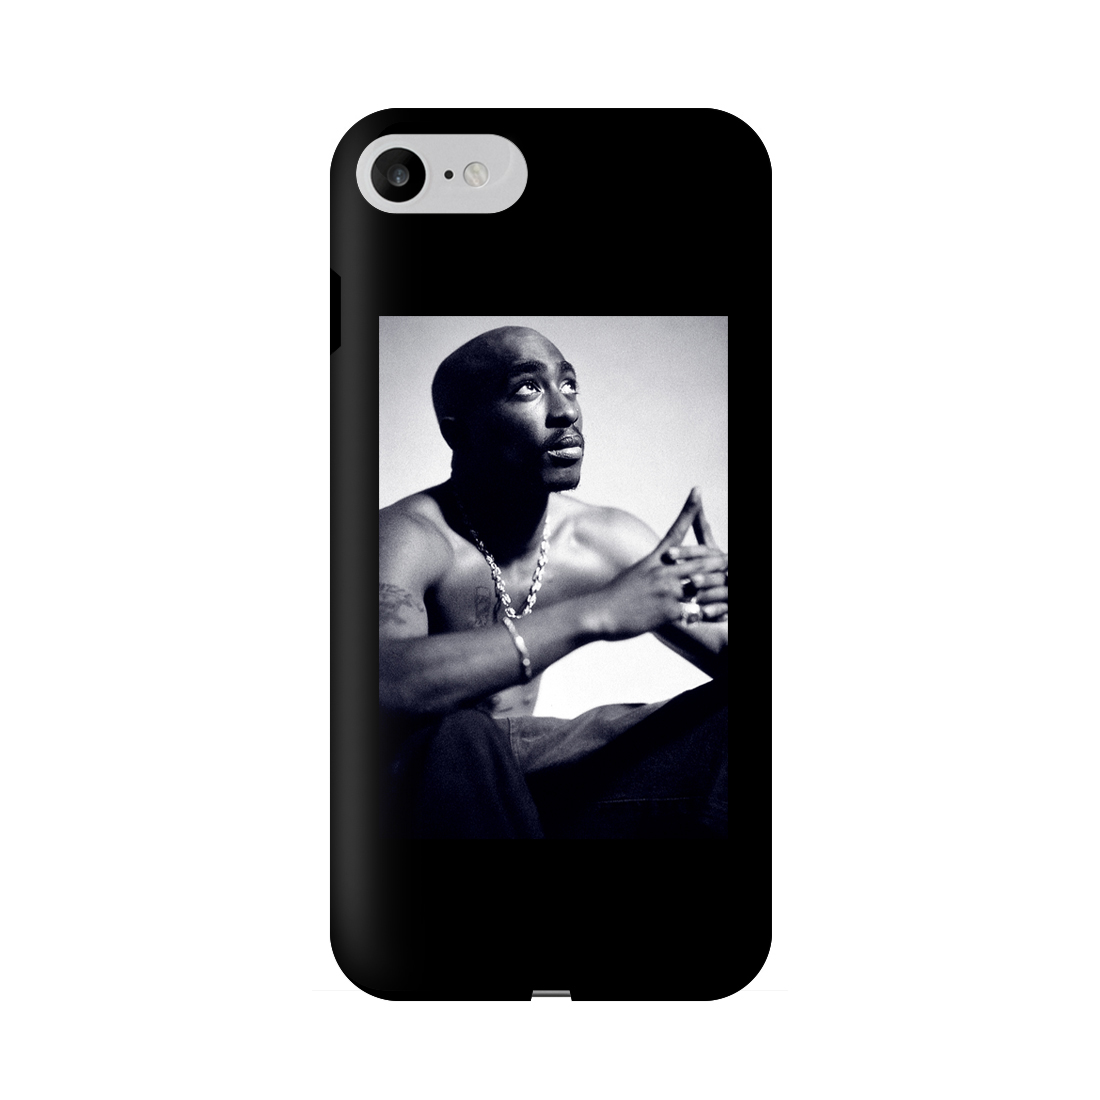 TUPAC PHOTO IPHONE 7 PLUS/8 PLUS CASE (BRENT193)